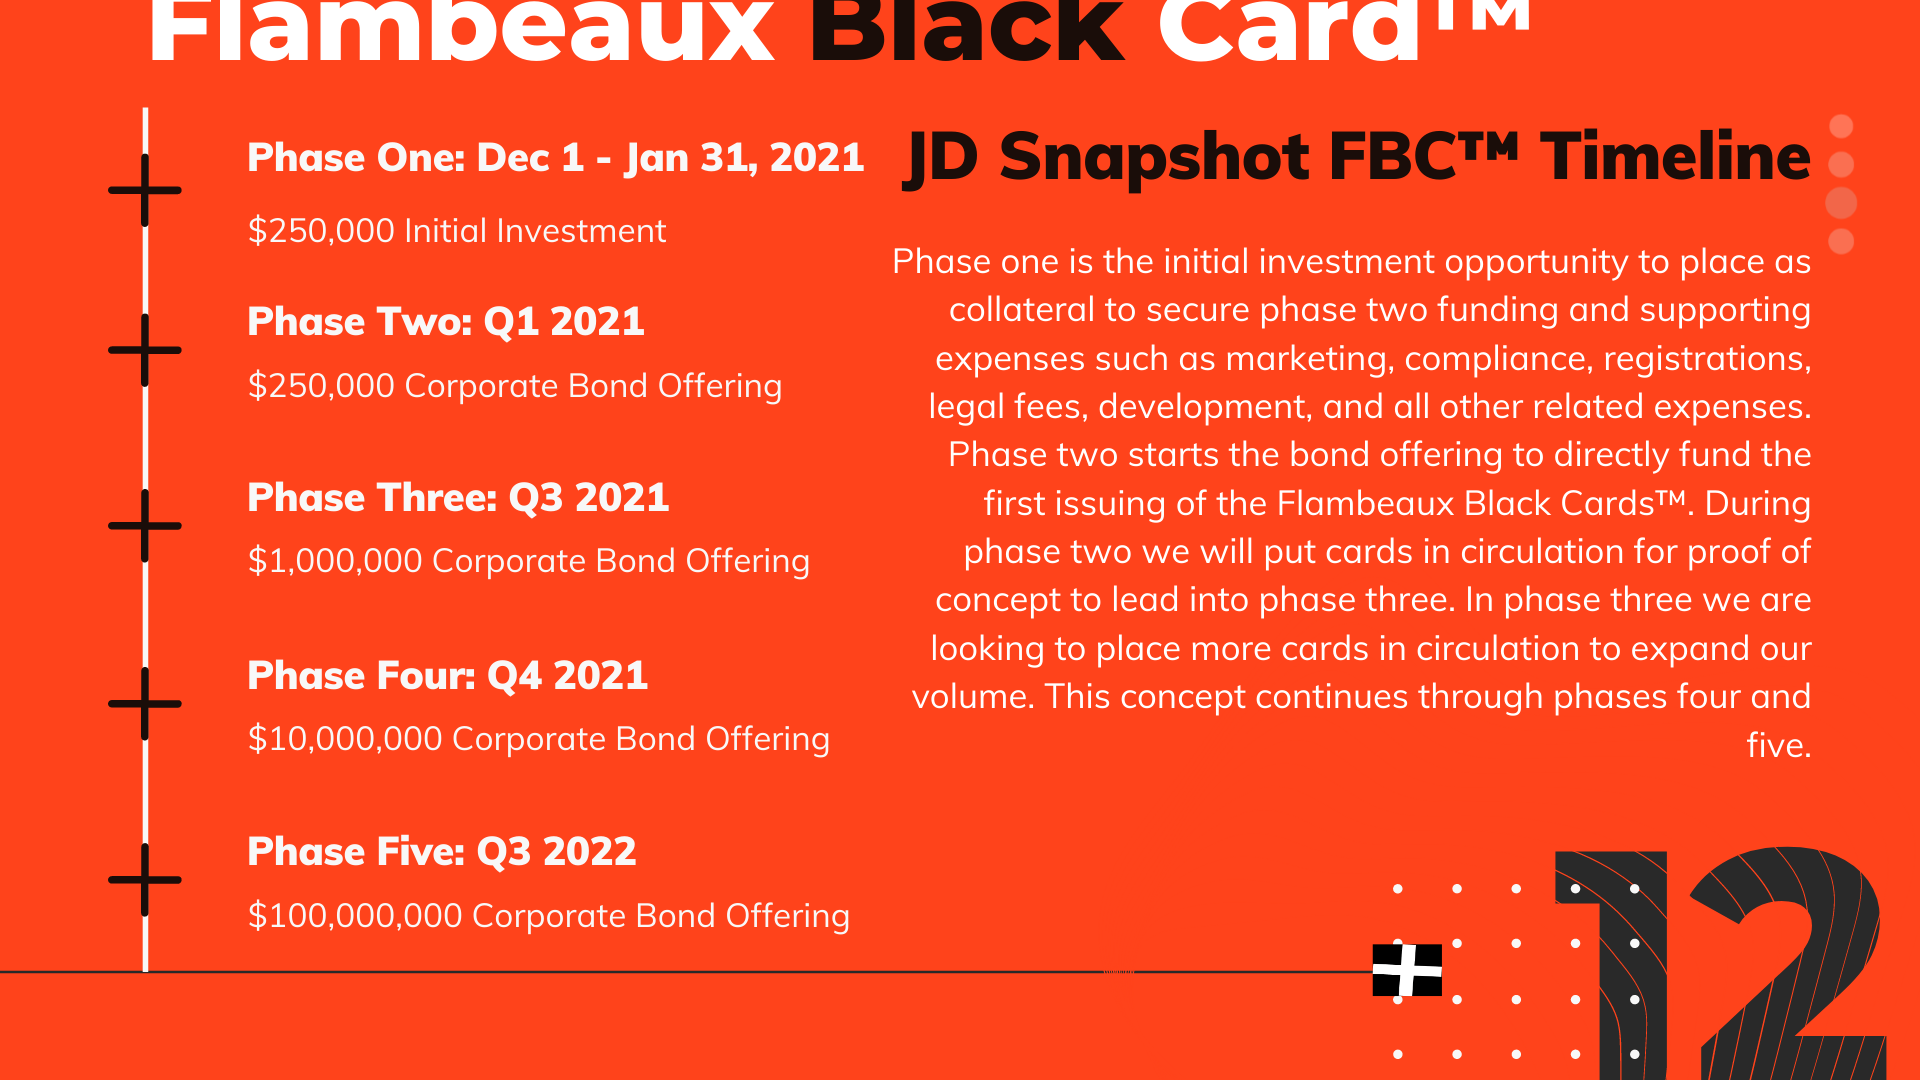 JD Snapshot FBC™ Timeline | Phase one is the initial investment opportunity to place as collateral to secure phase two funding and supporting expenses such as marketing, compliance, registrations, legal fees, development, and all other related expenses. Phase two starts the bond offering to directly fund the first issuing of the Flambeaux Black Cards™. During phase two we will put cards in circulation for proof of concept to lead into phase three. In phase three we are looking to place more cards in circulation to expand our volume. This concept continues through phases four and five. Phase One: Dec 1 - Jan 31, 2021 | $250,000 Initial Investment. Phase Two: Q1 2021 | $250,000 Corporate Bond Offering. Phase Three: Q3 2021 | $1,000,000 Corporate Bond Offering. Phase Four: Q4 2021 | $10,000,000 Corporate Bond Offering. Phase Five: Q3 2022 | $100,000,000 Corporate Bond Offering.